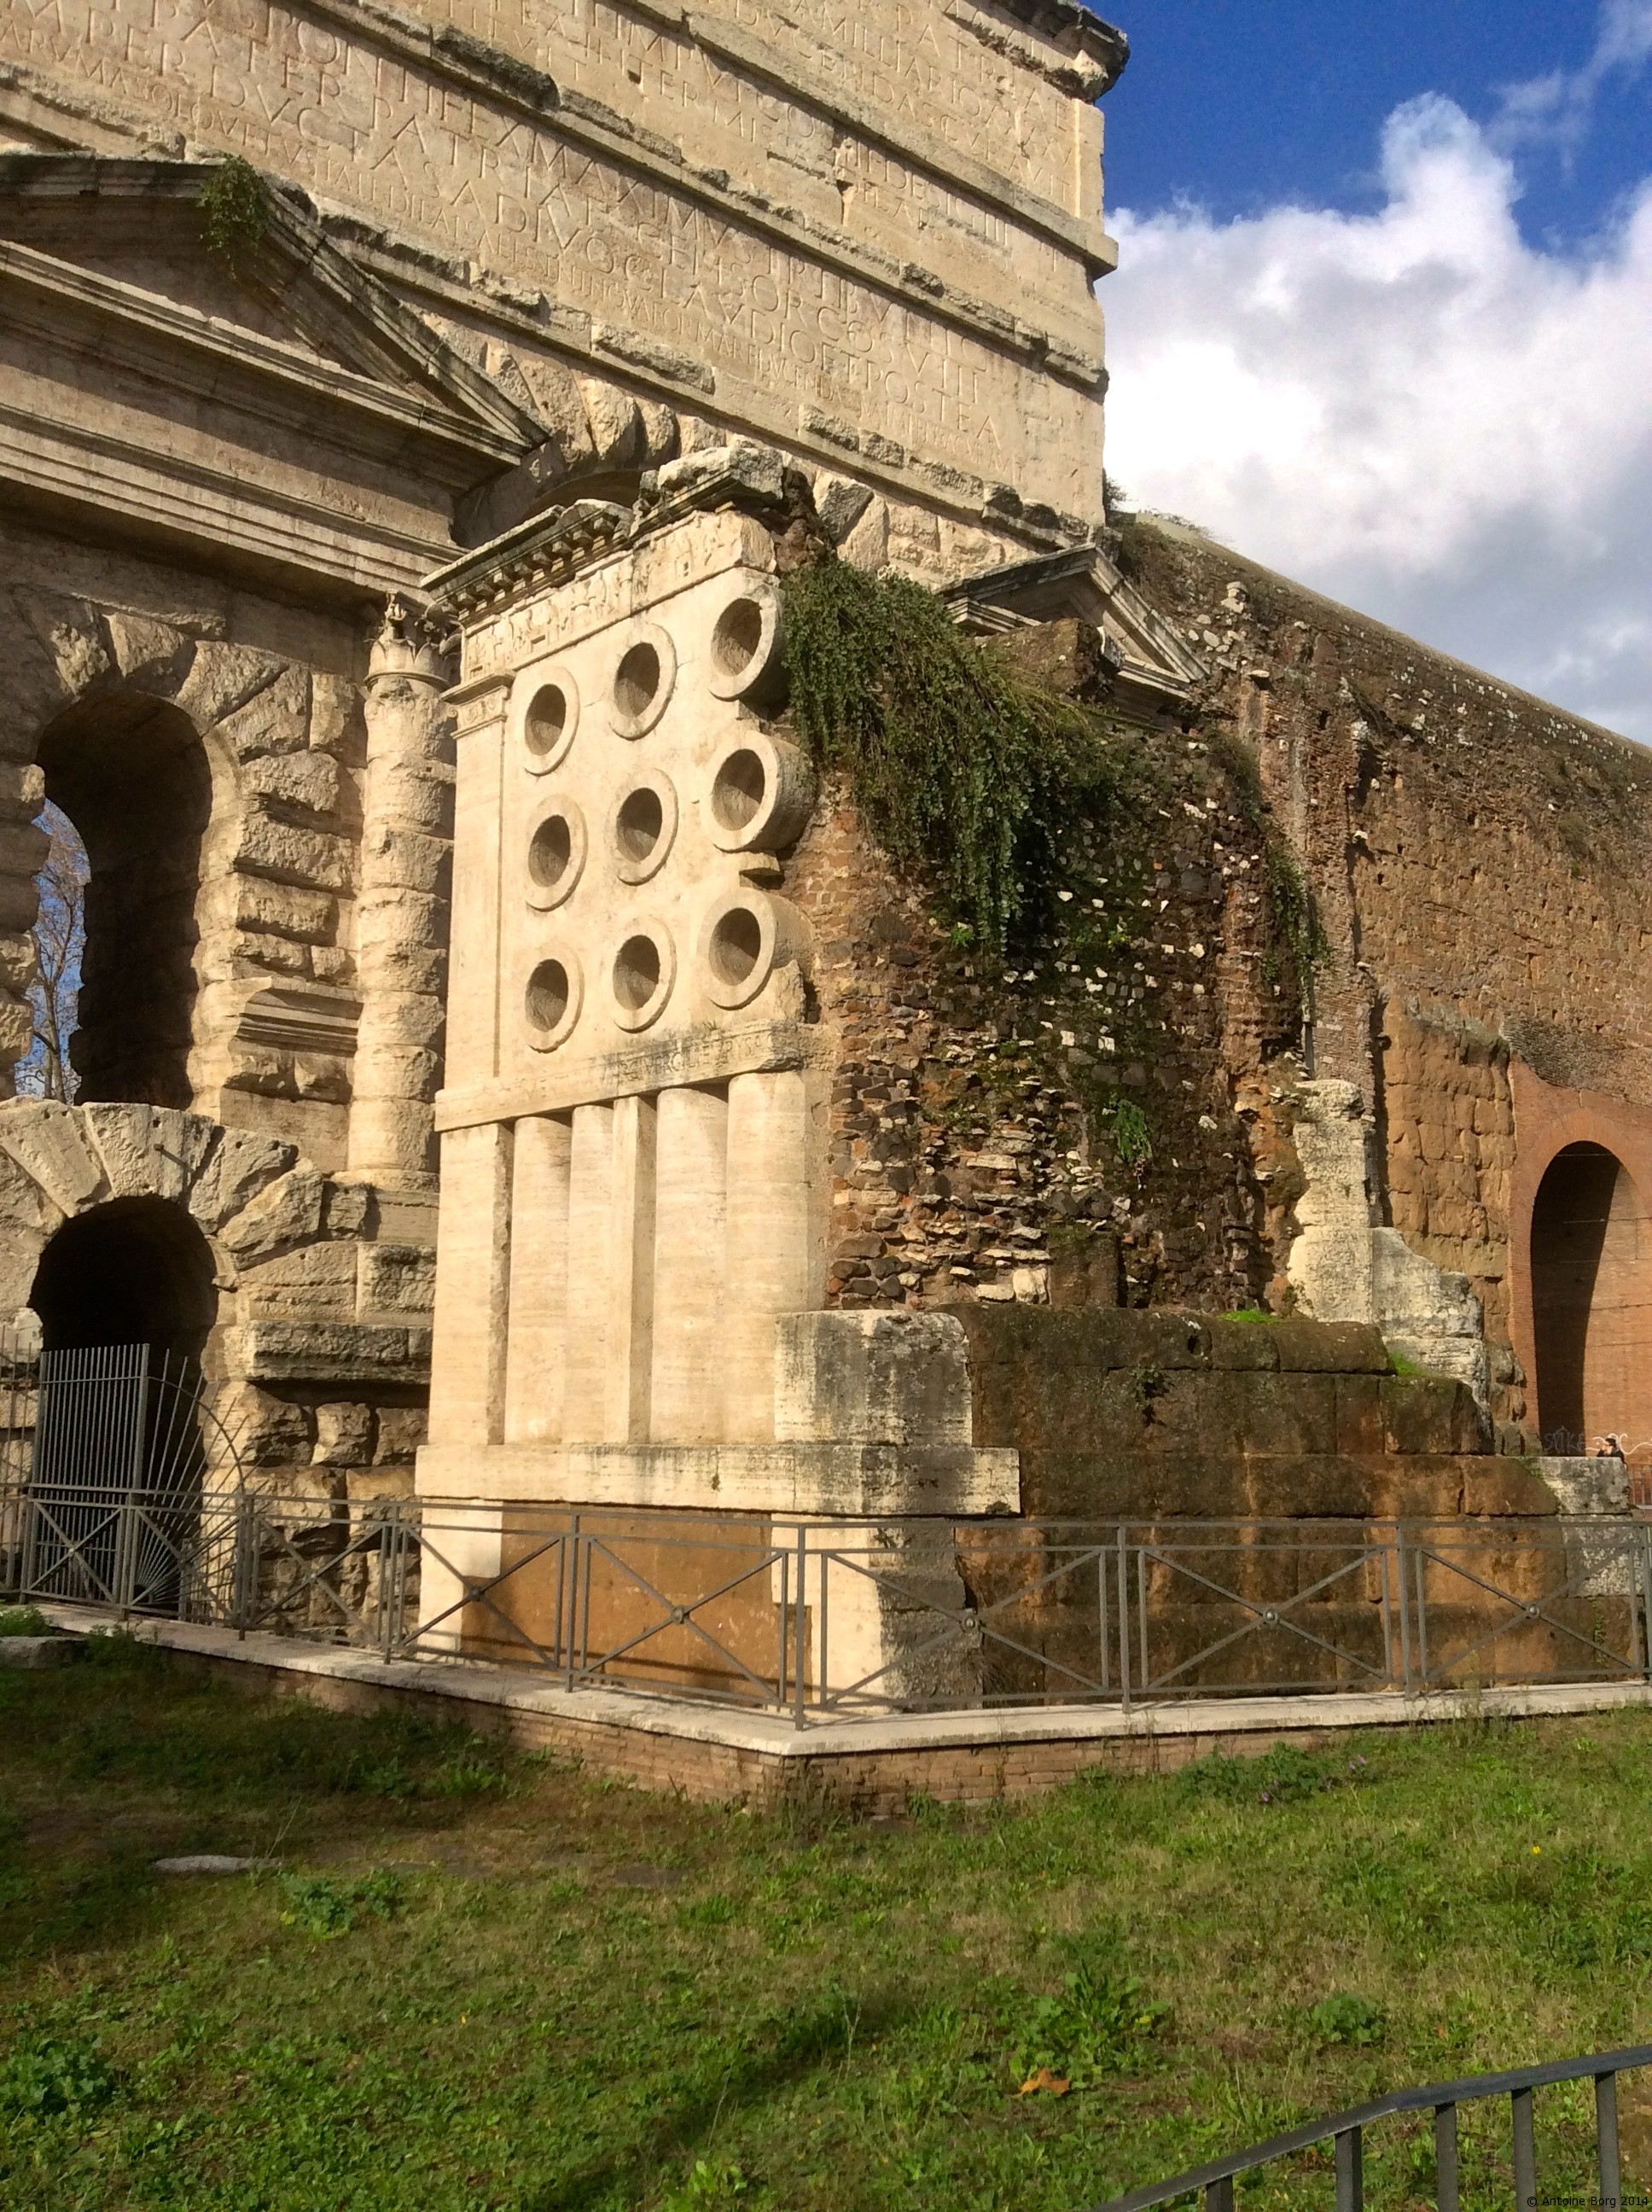 A photo of the baker's monument beside the walls of Ancient Rome